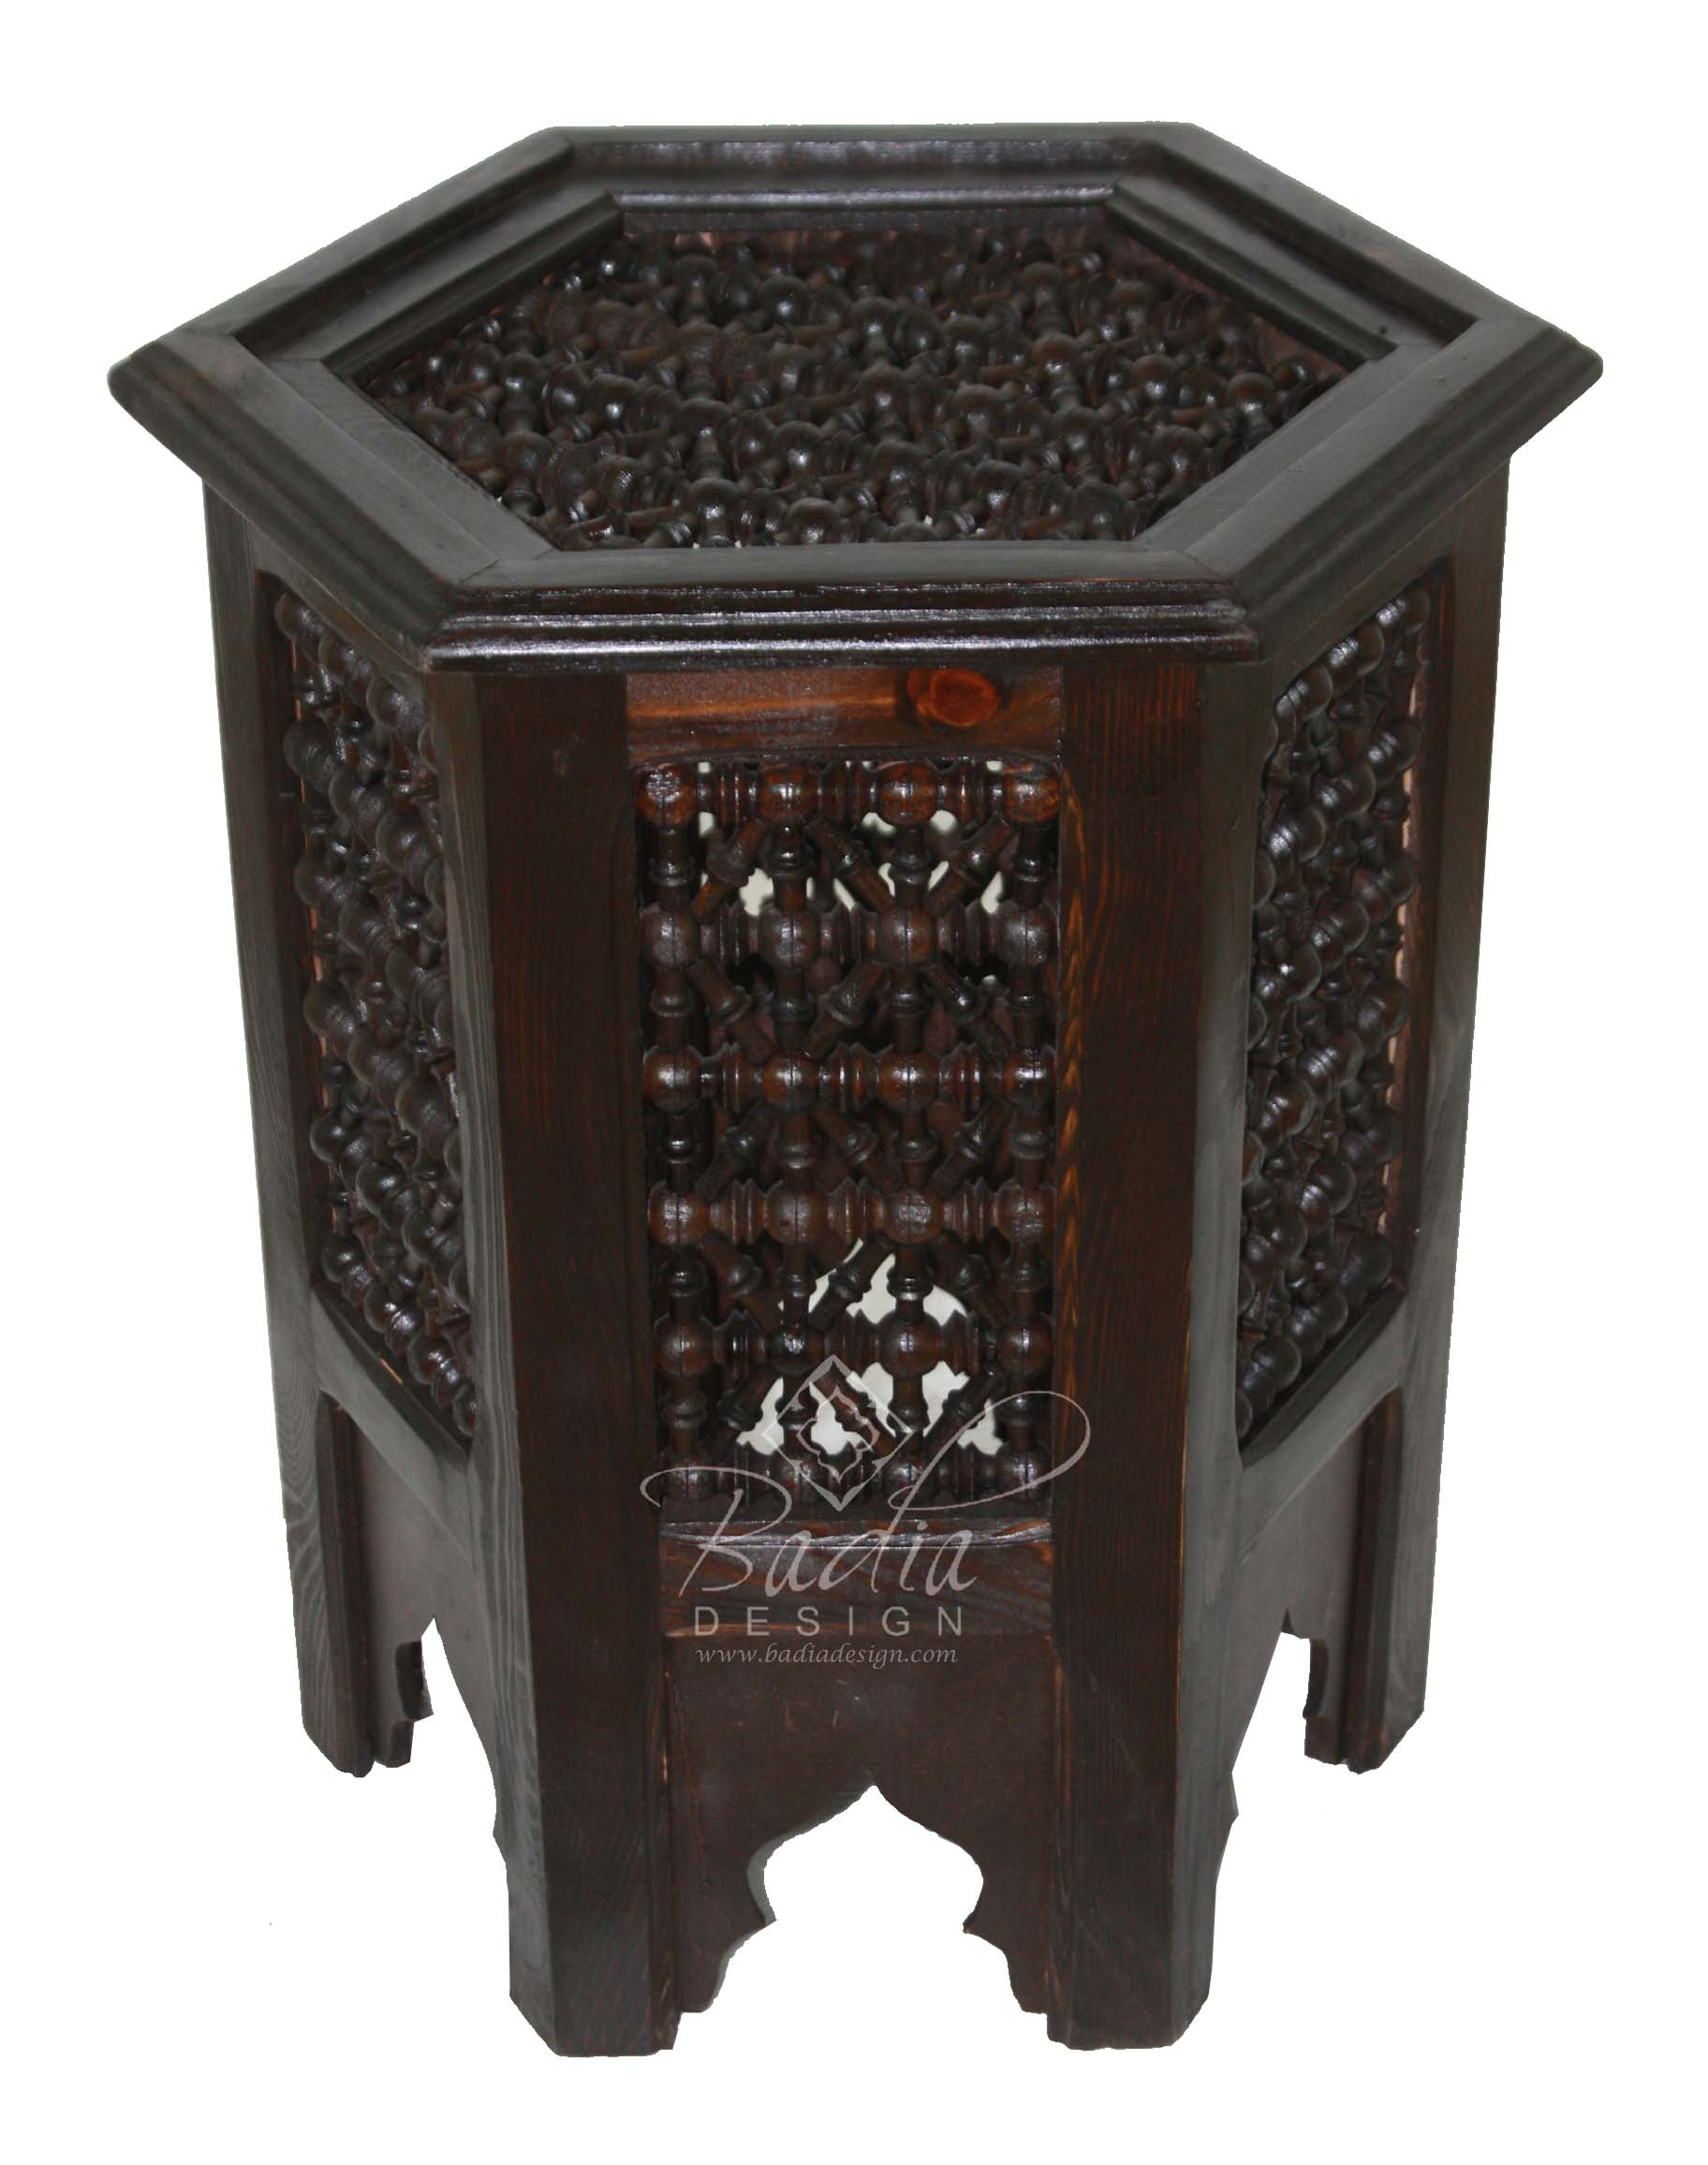 moroccan-moucharabieh-design-wooden-side-table-cw-st014-1.jpg